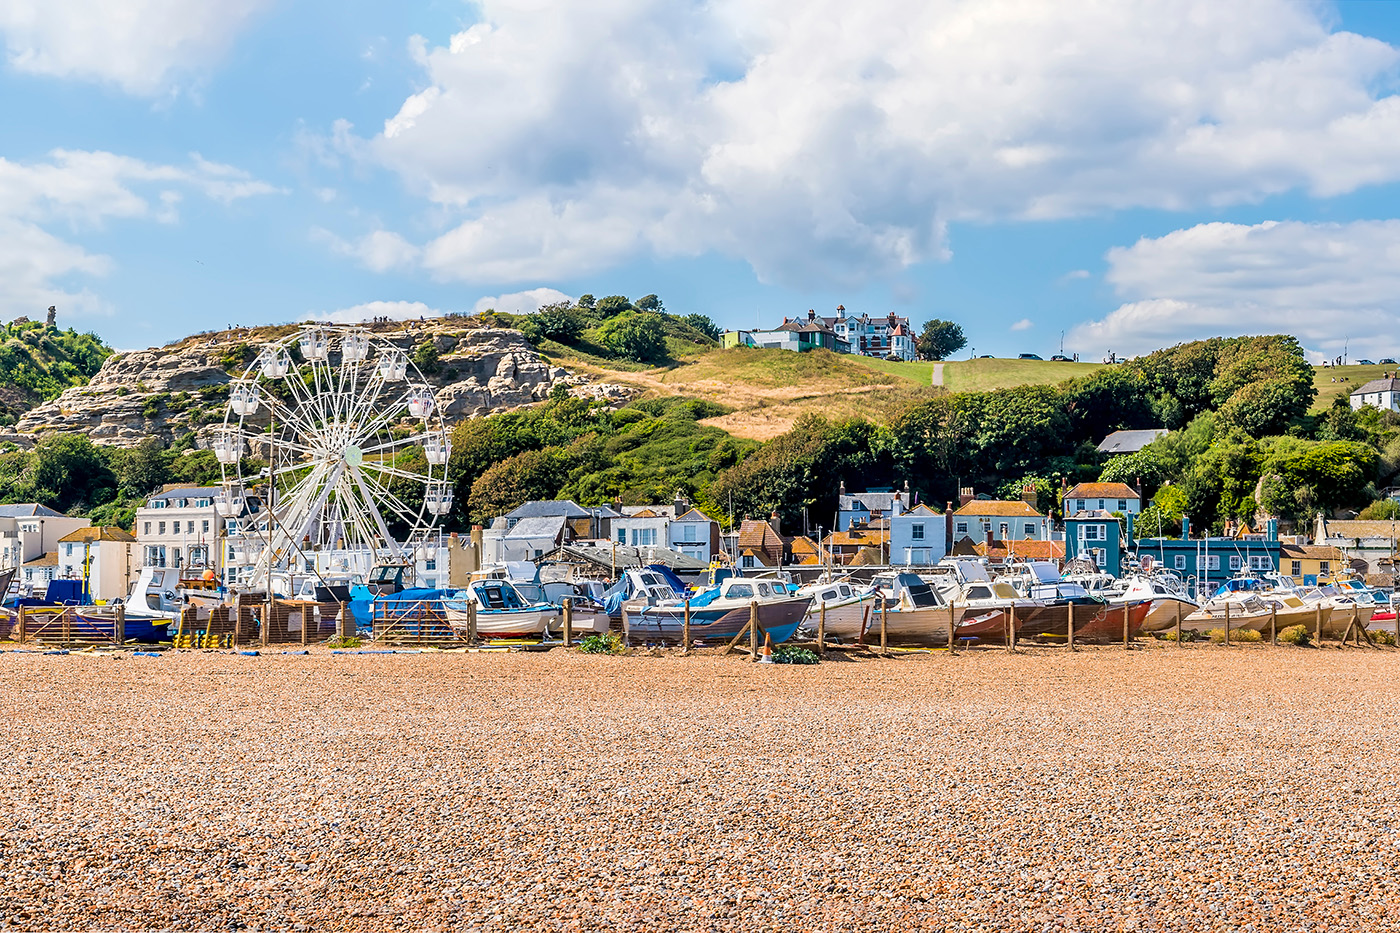 A view of Hastings Old Town from the beach, with fishing boats on the stones and cliffs in the distance